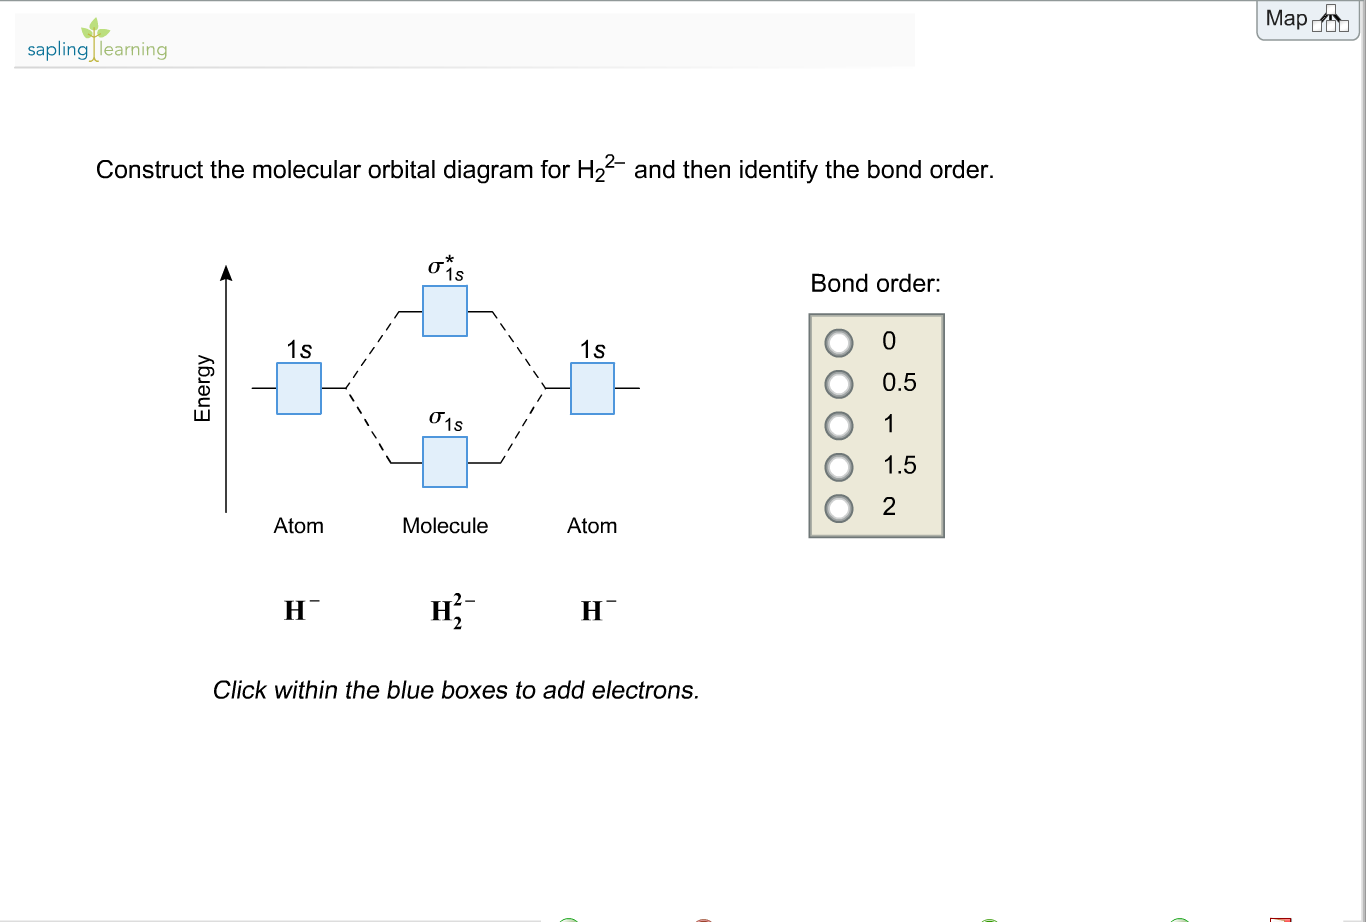 Sapling learning construct the molecular orbital d chegg question sapling learning construct the molecular orbital diagram for h2 and then identify the bond order pooptronica